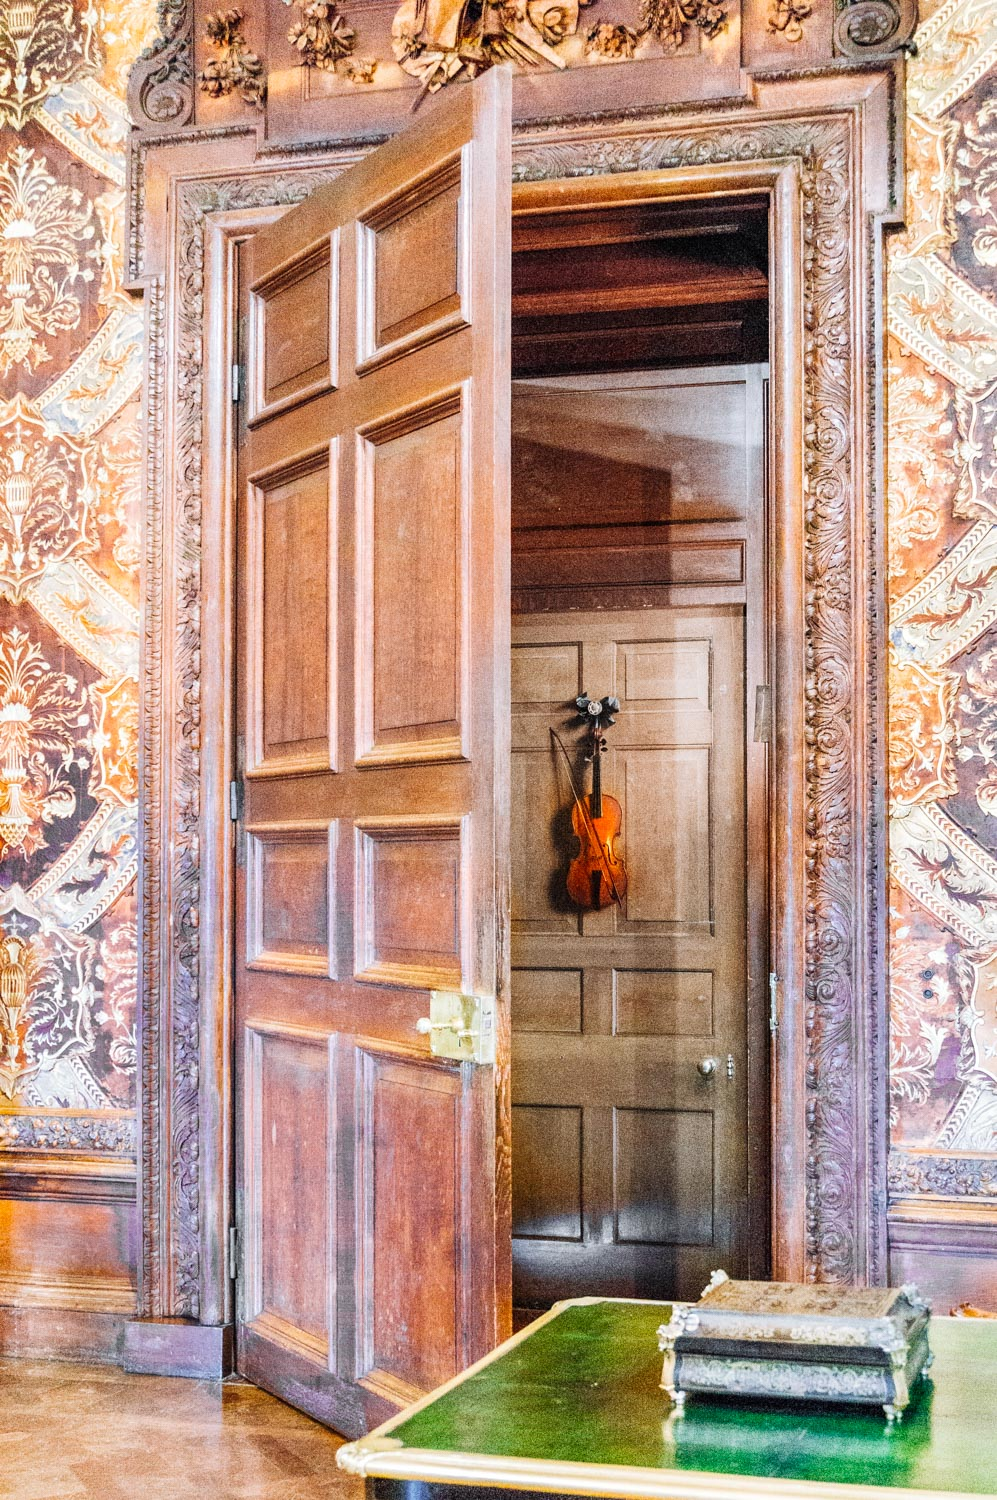 Trompe-l'oeil of a violin and bow on a real door. This 17th century painting was rescued from a fire in London and brought to Chatsworth in the 18th century